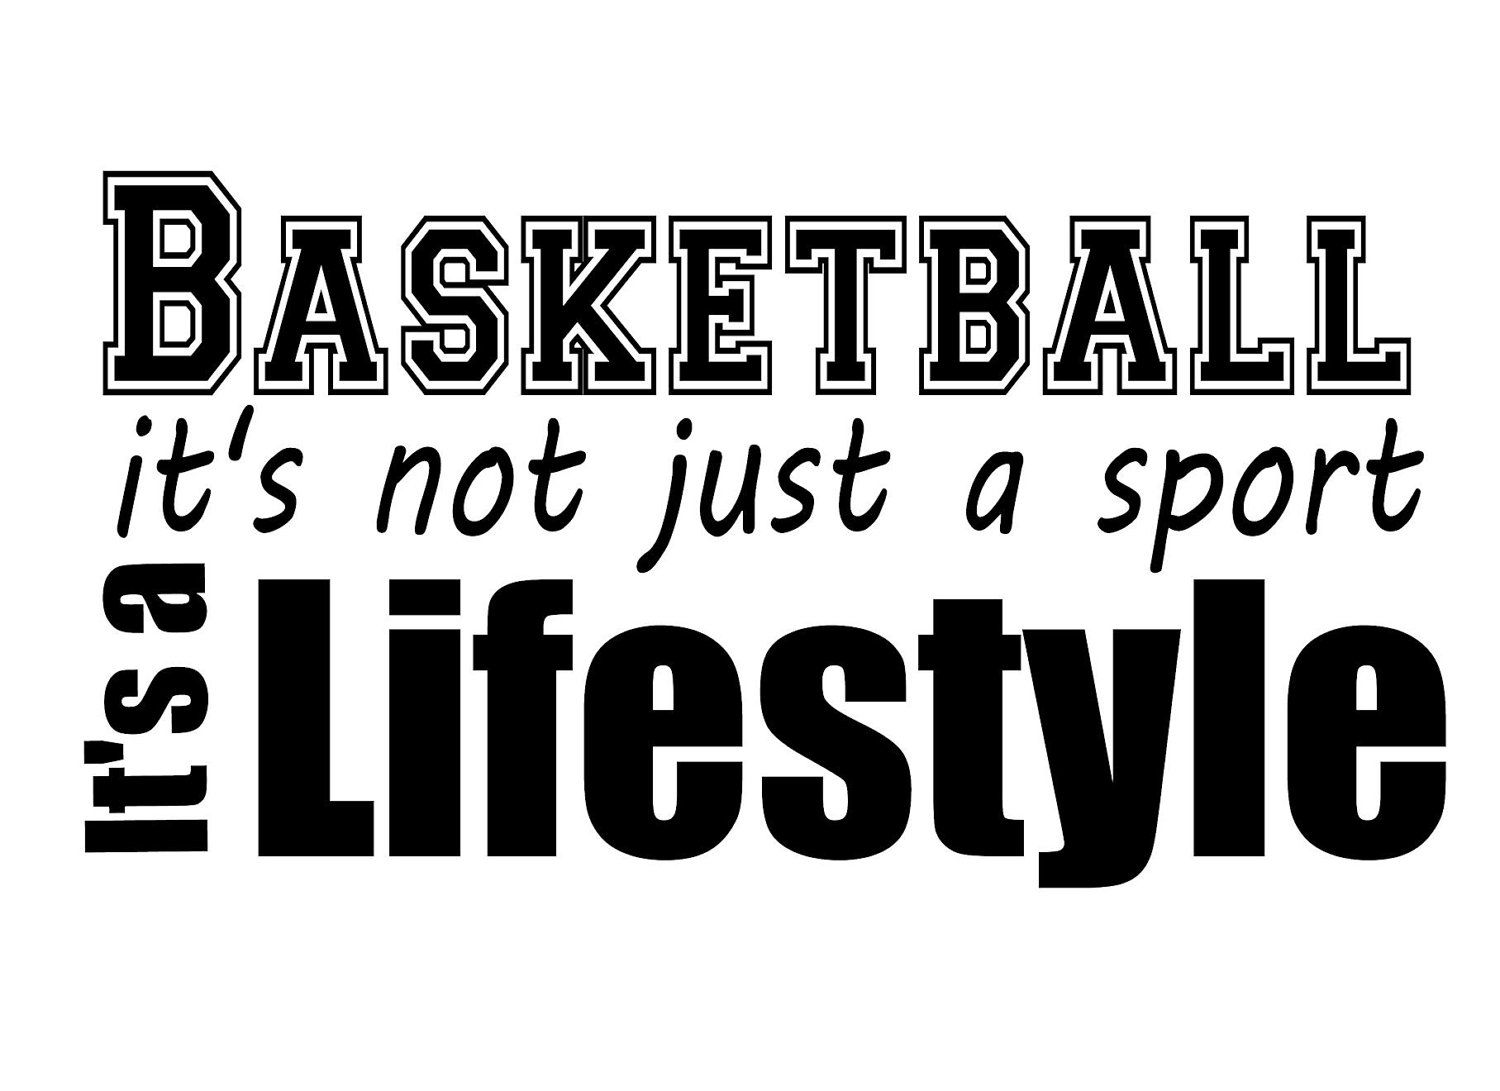 Basketball quotes instagram